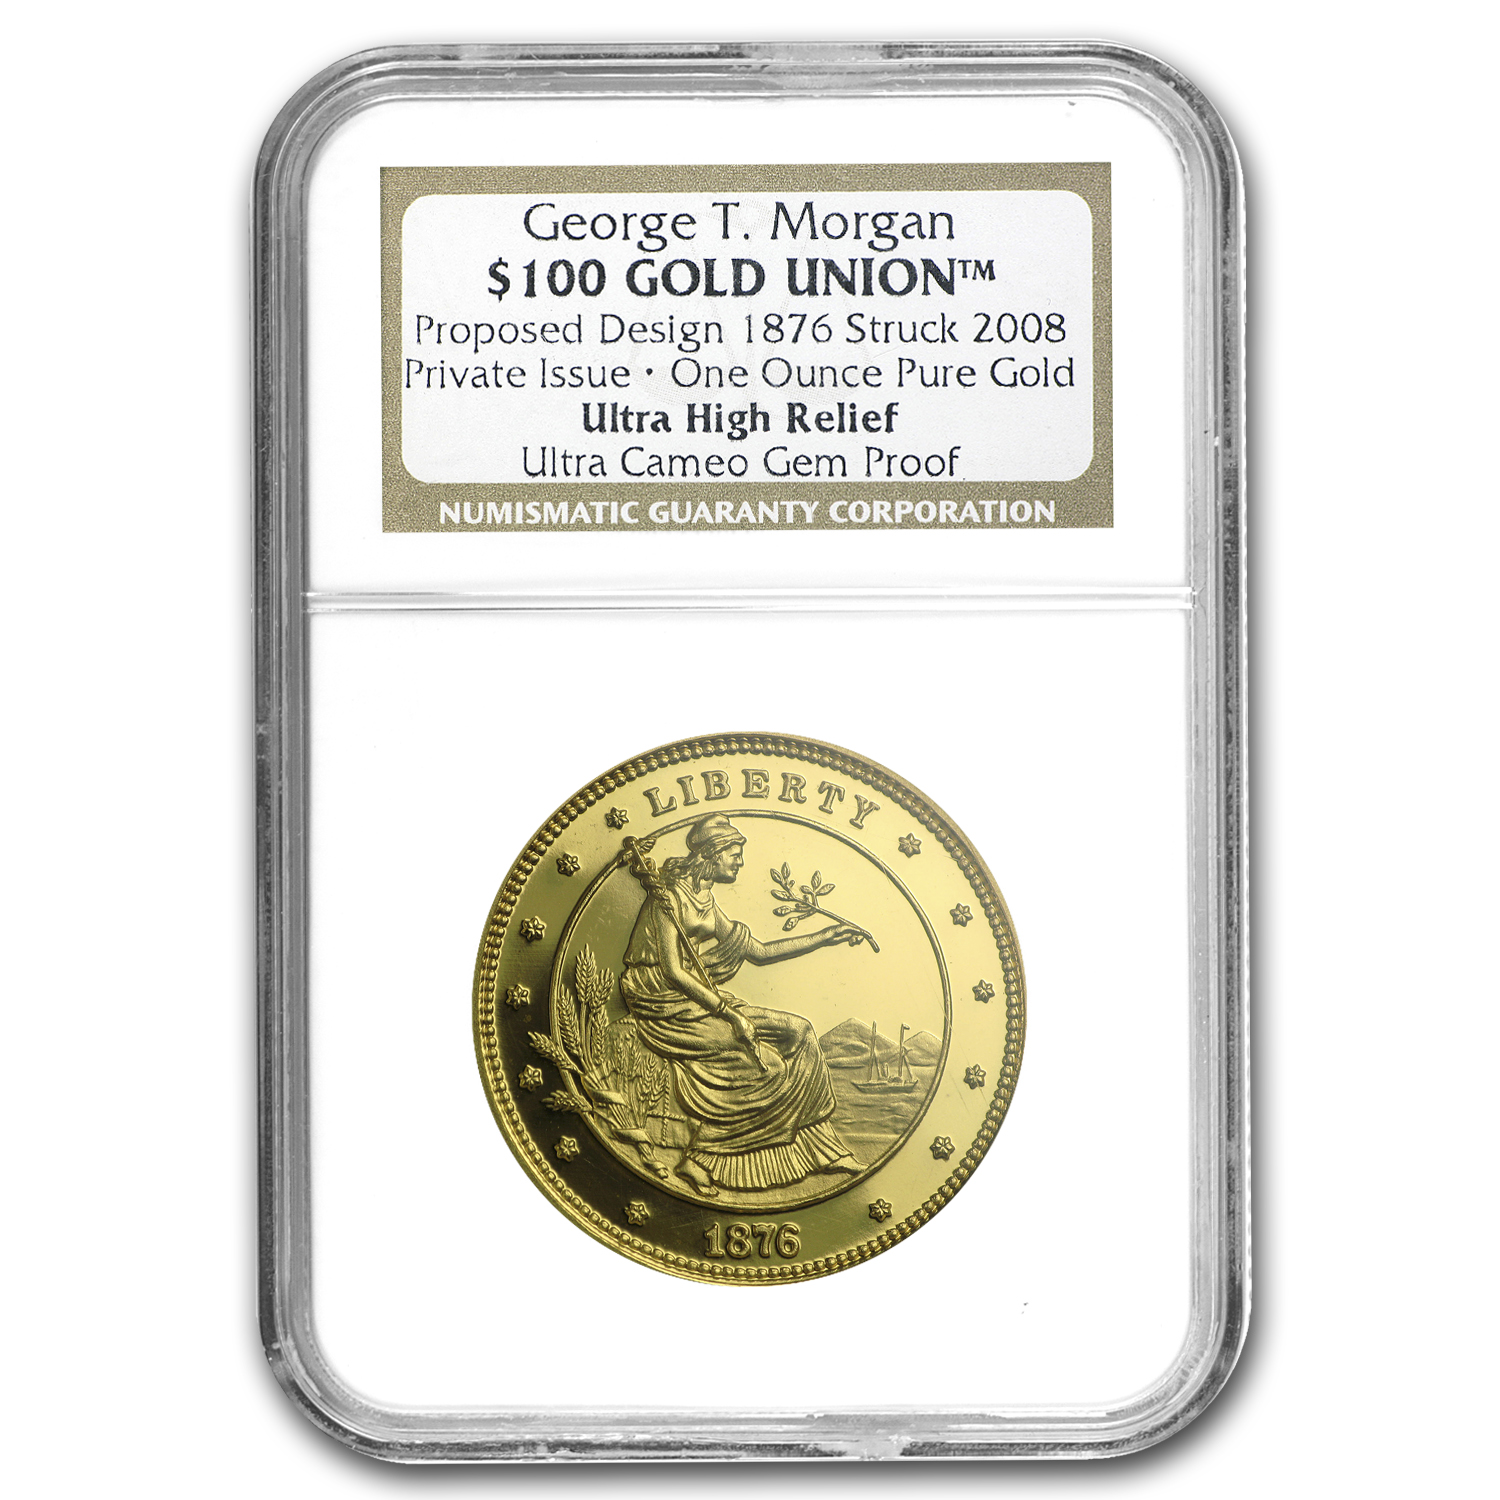 1 oz Gold Round - Ultra High Relief George T. Morgan Proof NGC